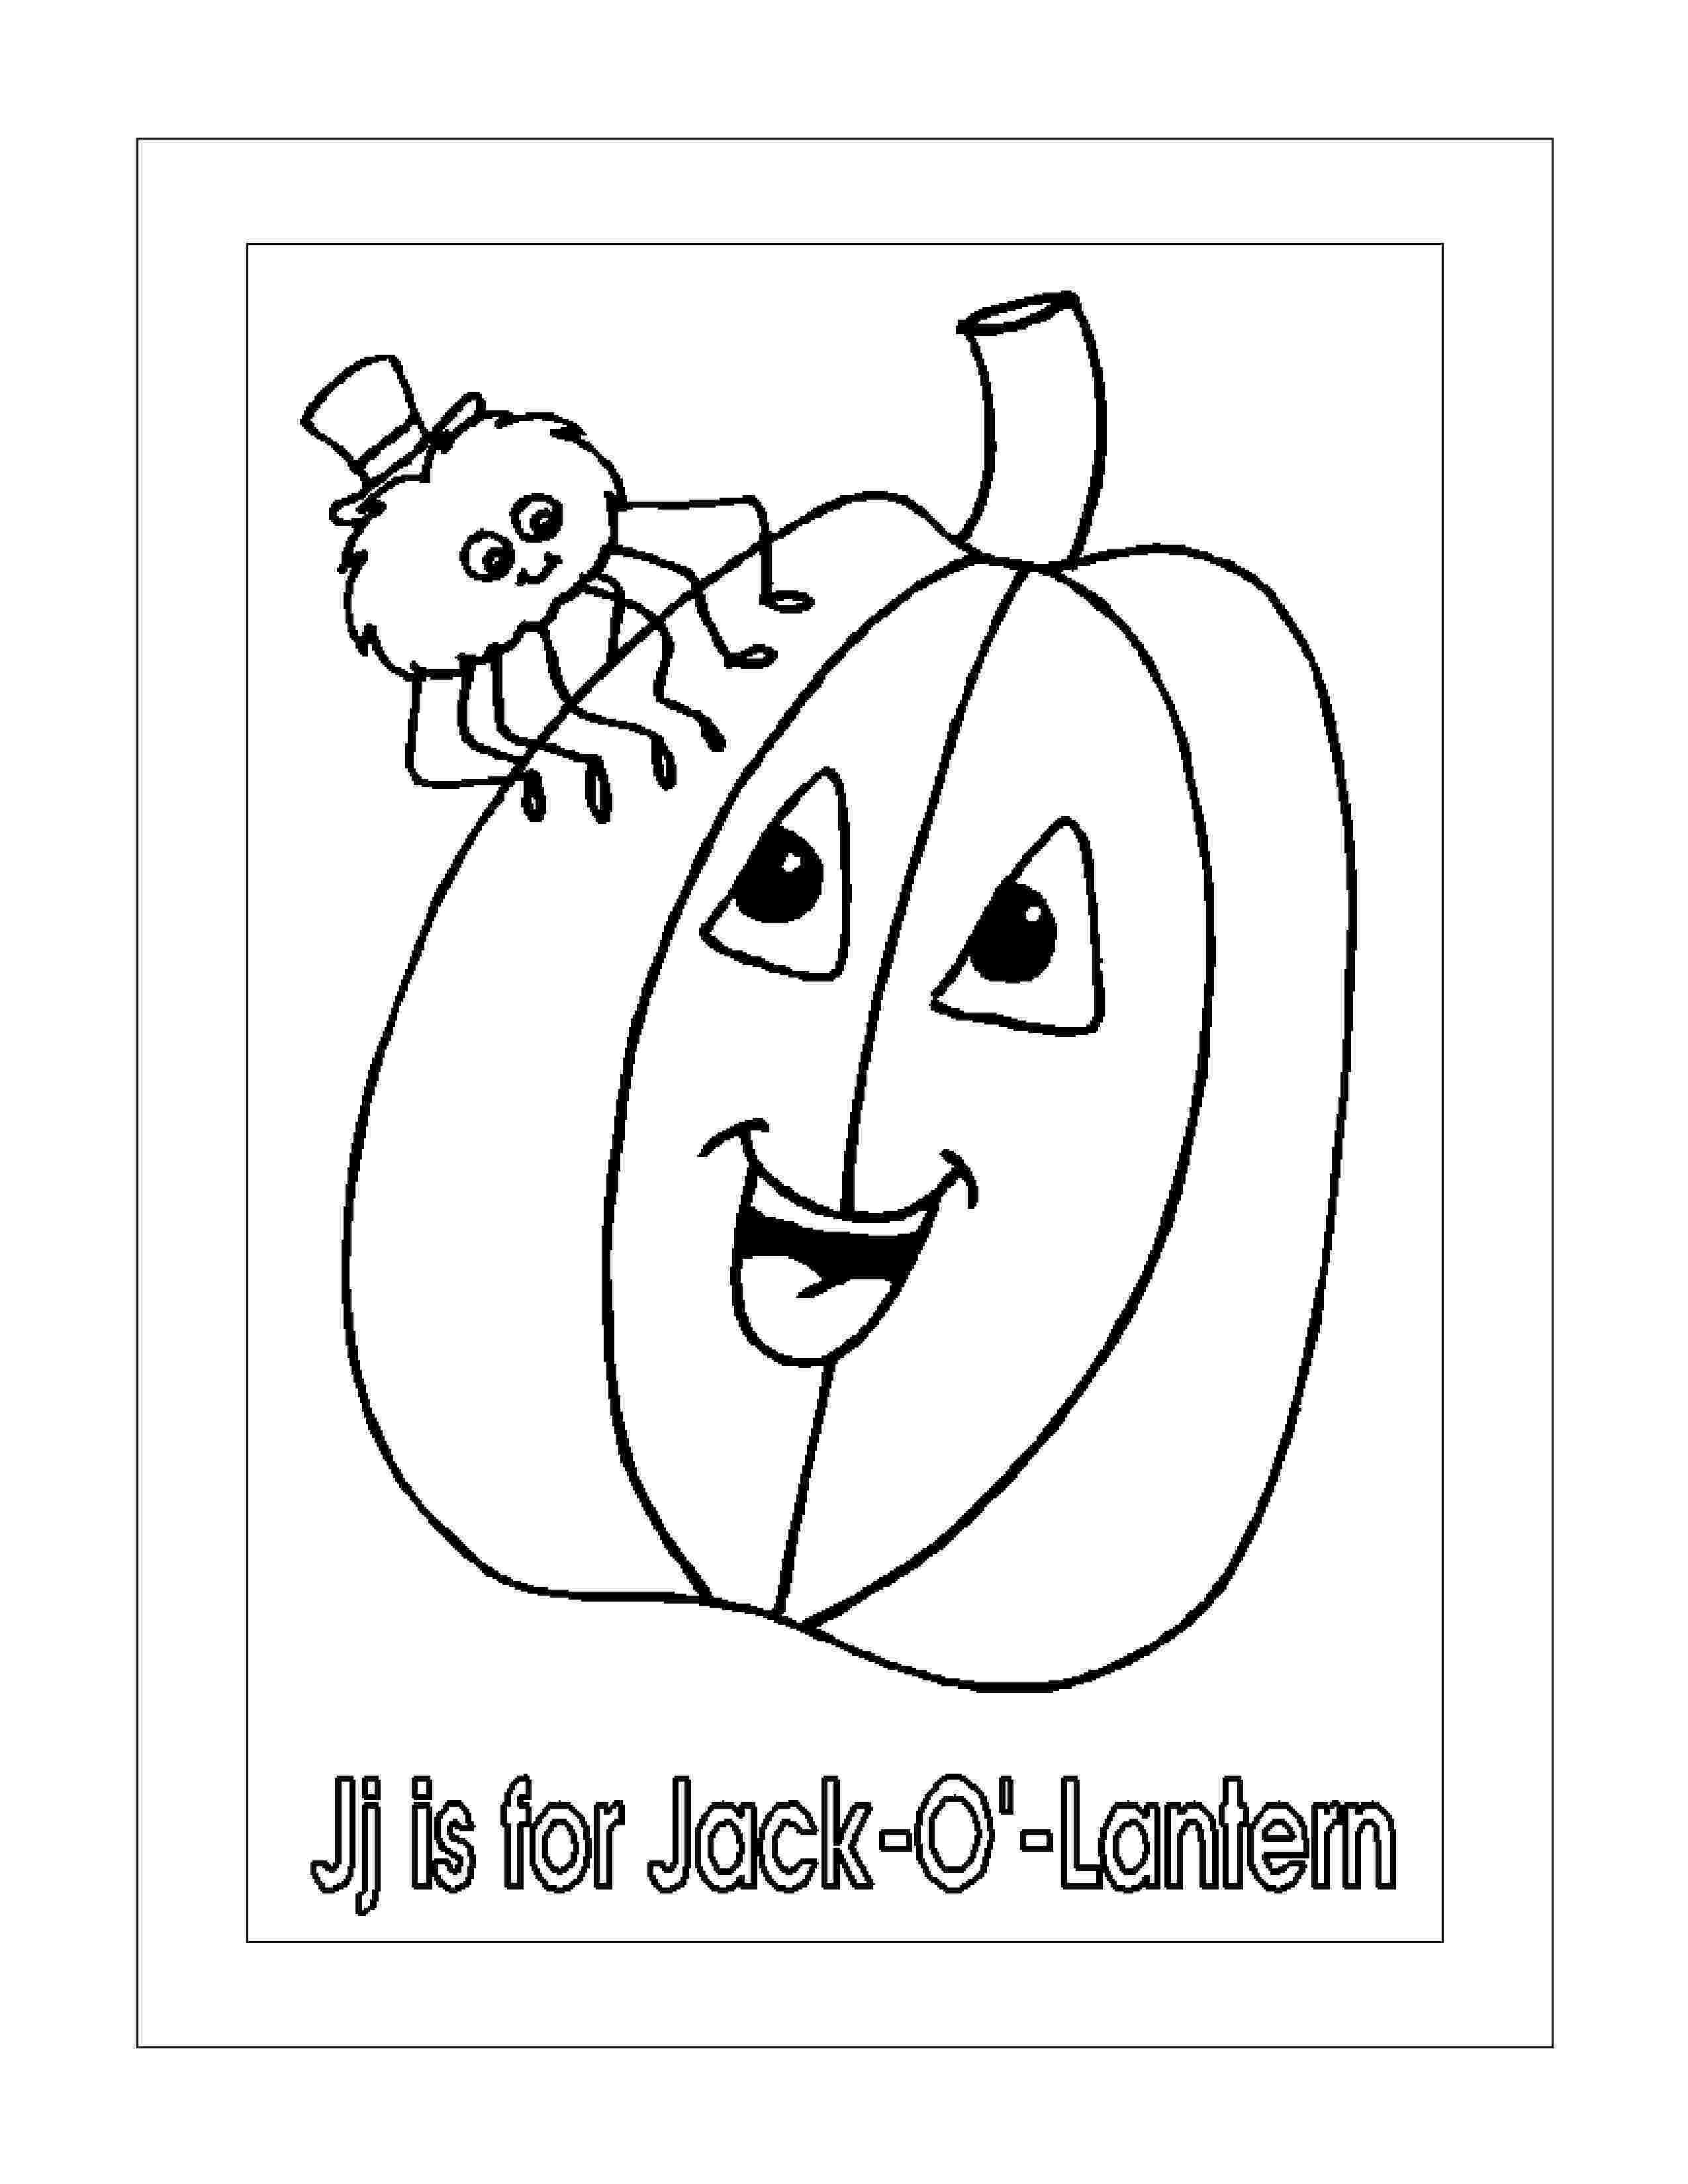 printable fruit coloring pages free printable fruit coloring pages for kids fruit pages printable coloring 1 1